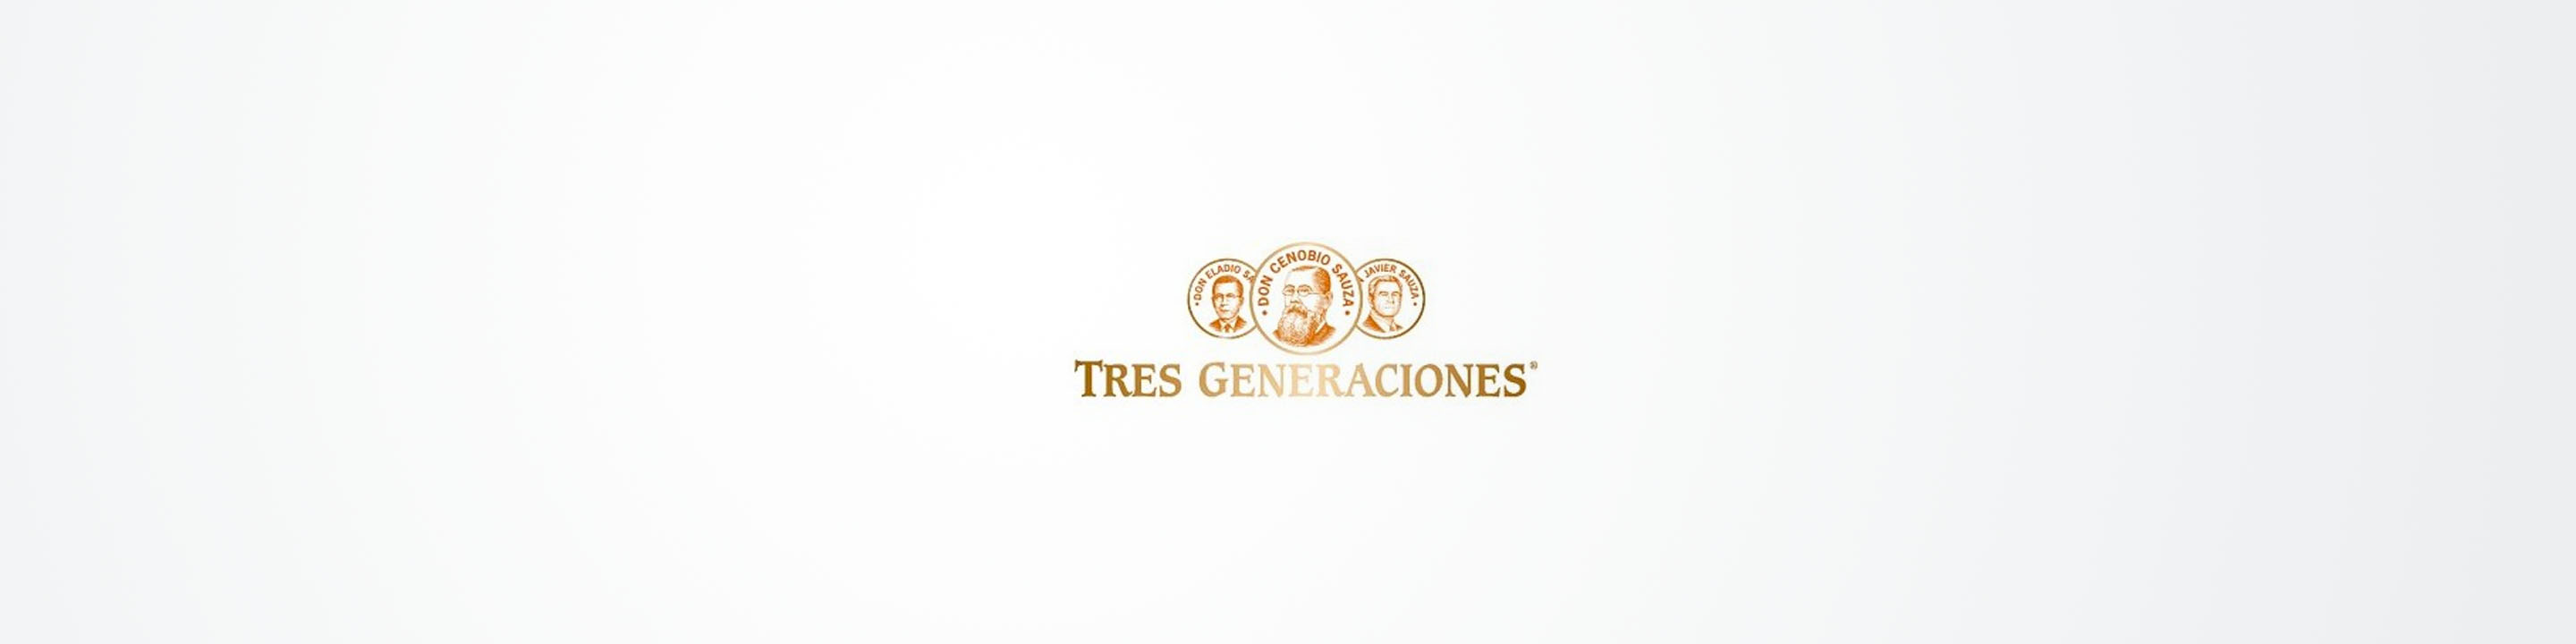 The first exquisite small batch of Tres Generaciones® Tequila, just 100 numbered ceramic bottles, was created by Third Generation Don Francisco Javier Sauza as a memorial to his family's 100 years of wisdom, skill, and courage. When close friends and family tasted this tequila that was so exquisite and so refined, Don Francisco decided that every tequila lover deserved the chance to enjoy this tribute to his family's achievements.  Buy Tres Generaciones online now from nearby liquor stores via Minibar Delivery.